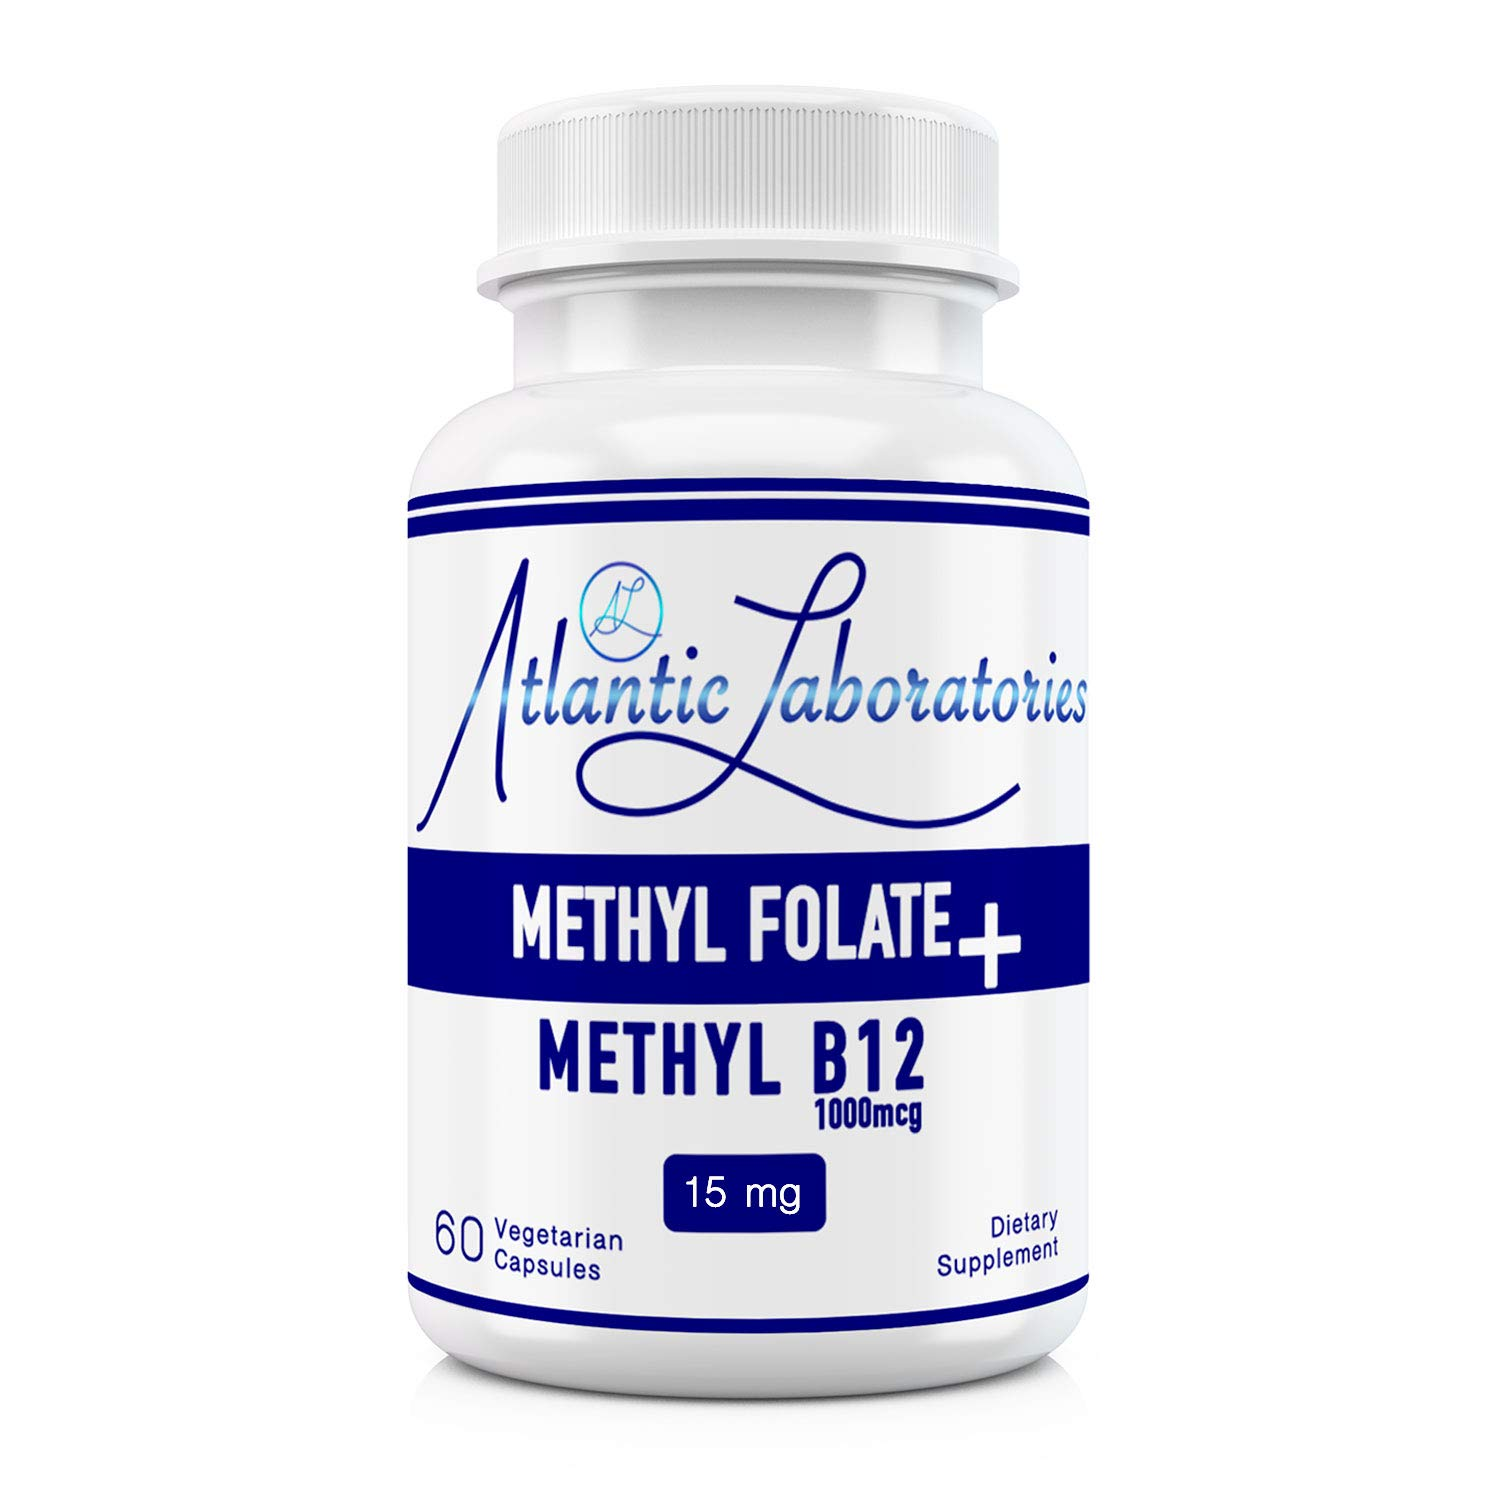 Atlantic Laboratories L-Methylfolate 15 mg + B Complex Cofactors & Essential Amino Acids - Active Folate, Methylated B12, B6 and Glycine for Brain, Heart & Fetal Health, 60 Count (2 Month Supply) by Atlantic Laboratories